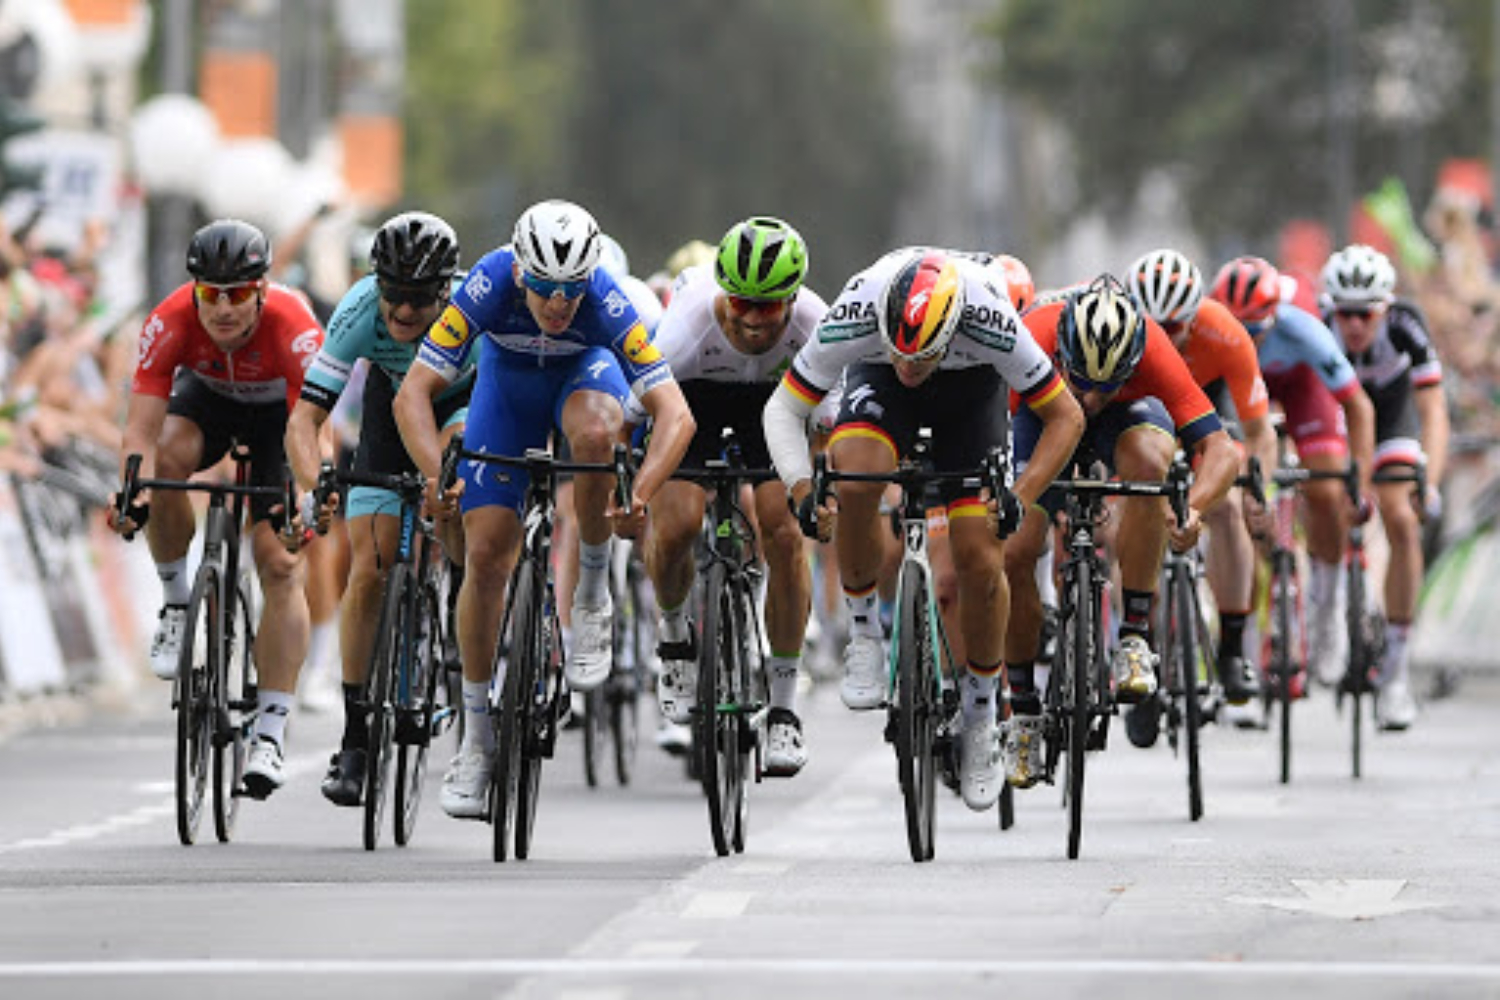 BONN, GERMANY - AUGUST 23: Arrival / Sprint / Alvaro Jose Hodeg of Colombia and Team Quick-Step Floors / Pascal Ackermann of Germany and Team Bora Hansgrohe / Niccolo Bonifazio of Italy and Bahrain Merida Pro Team / Alexander Krieger of Germany and Team Leopard Pro Cycling / during the 33rd Deutschland Tour 2018, a 157km stage from Koblenz to Bonn / Deine Tour / on August 23, 2018 in Bonn, Germany. (Photo by Justin Setterfield/Getty Images)